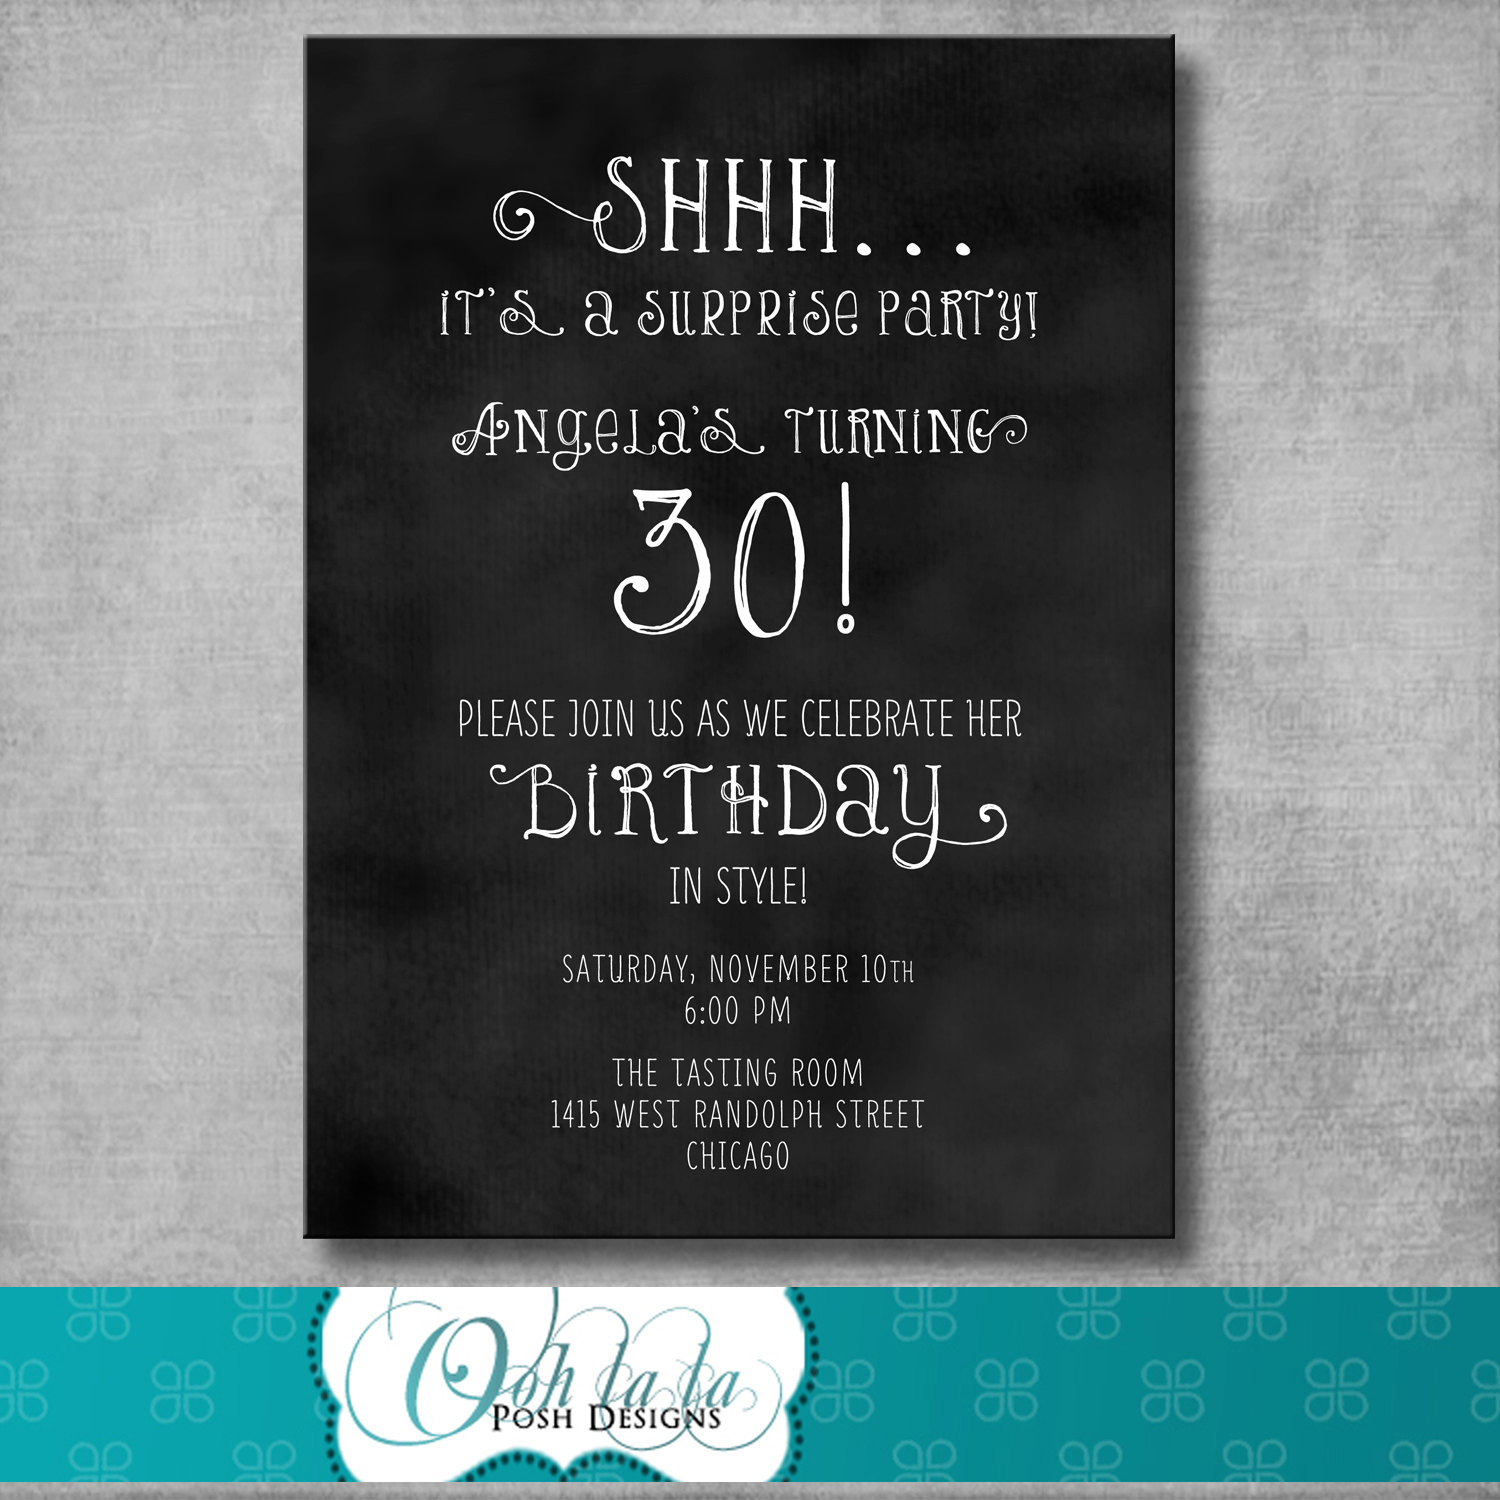 free printable 40th birthday party invitation templates ; Adult-Birthday-Invitation-Template-and-get-inspired-to-create-your-own-birthday-Invitation-design-with-this-ideas-8